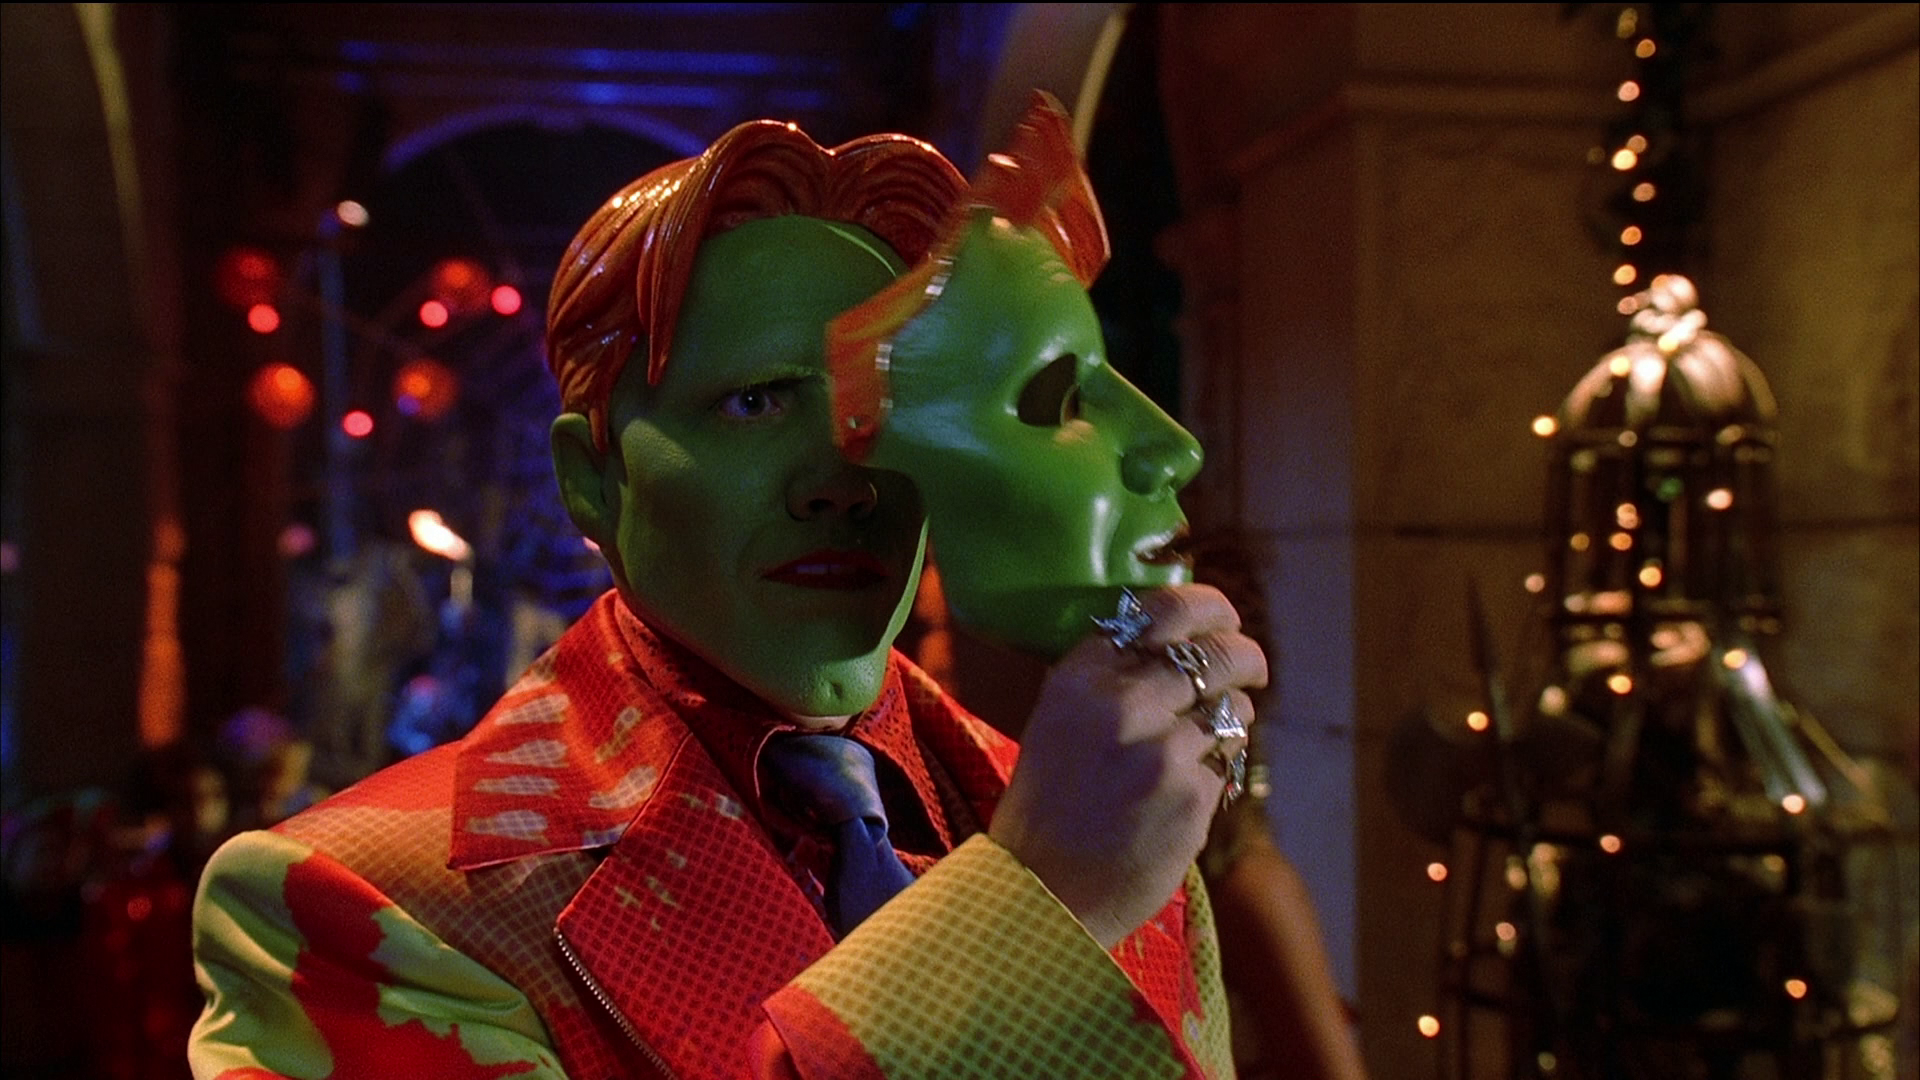 Son of the Mask 2005 BluRay REMUX 1080p AVC DTS-HD MA 5.1 - KRaLiMaRKo